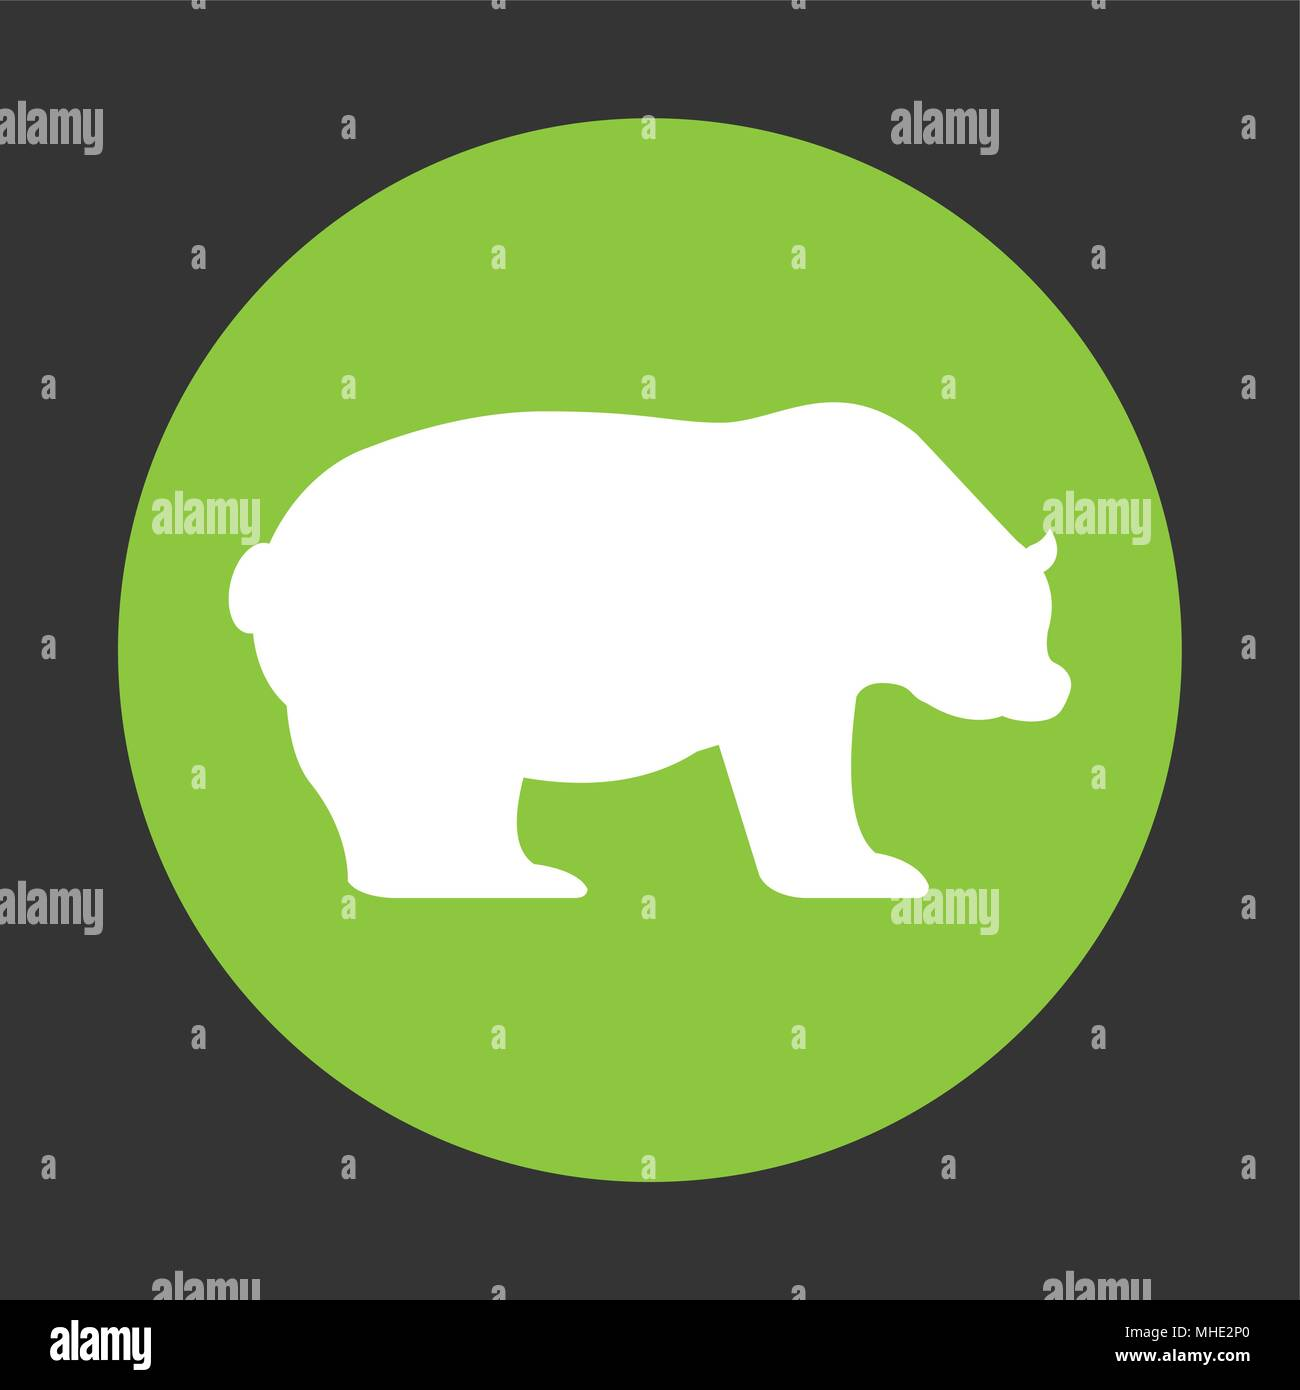 stock exchange symbol Stock Vector